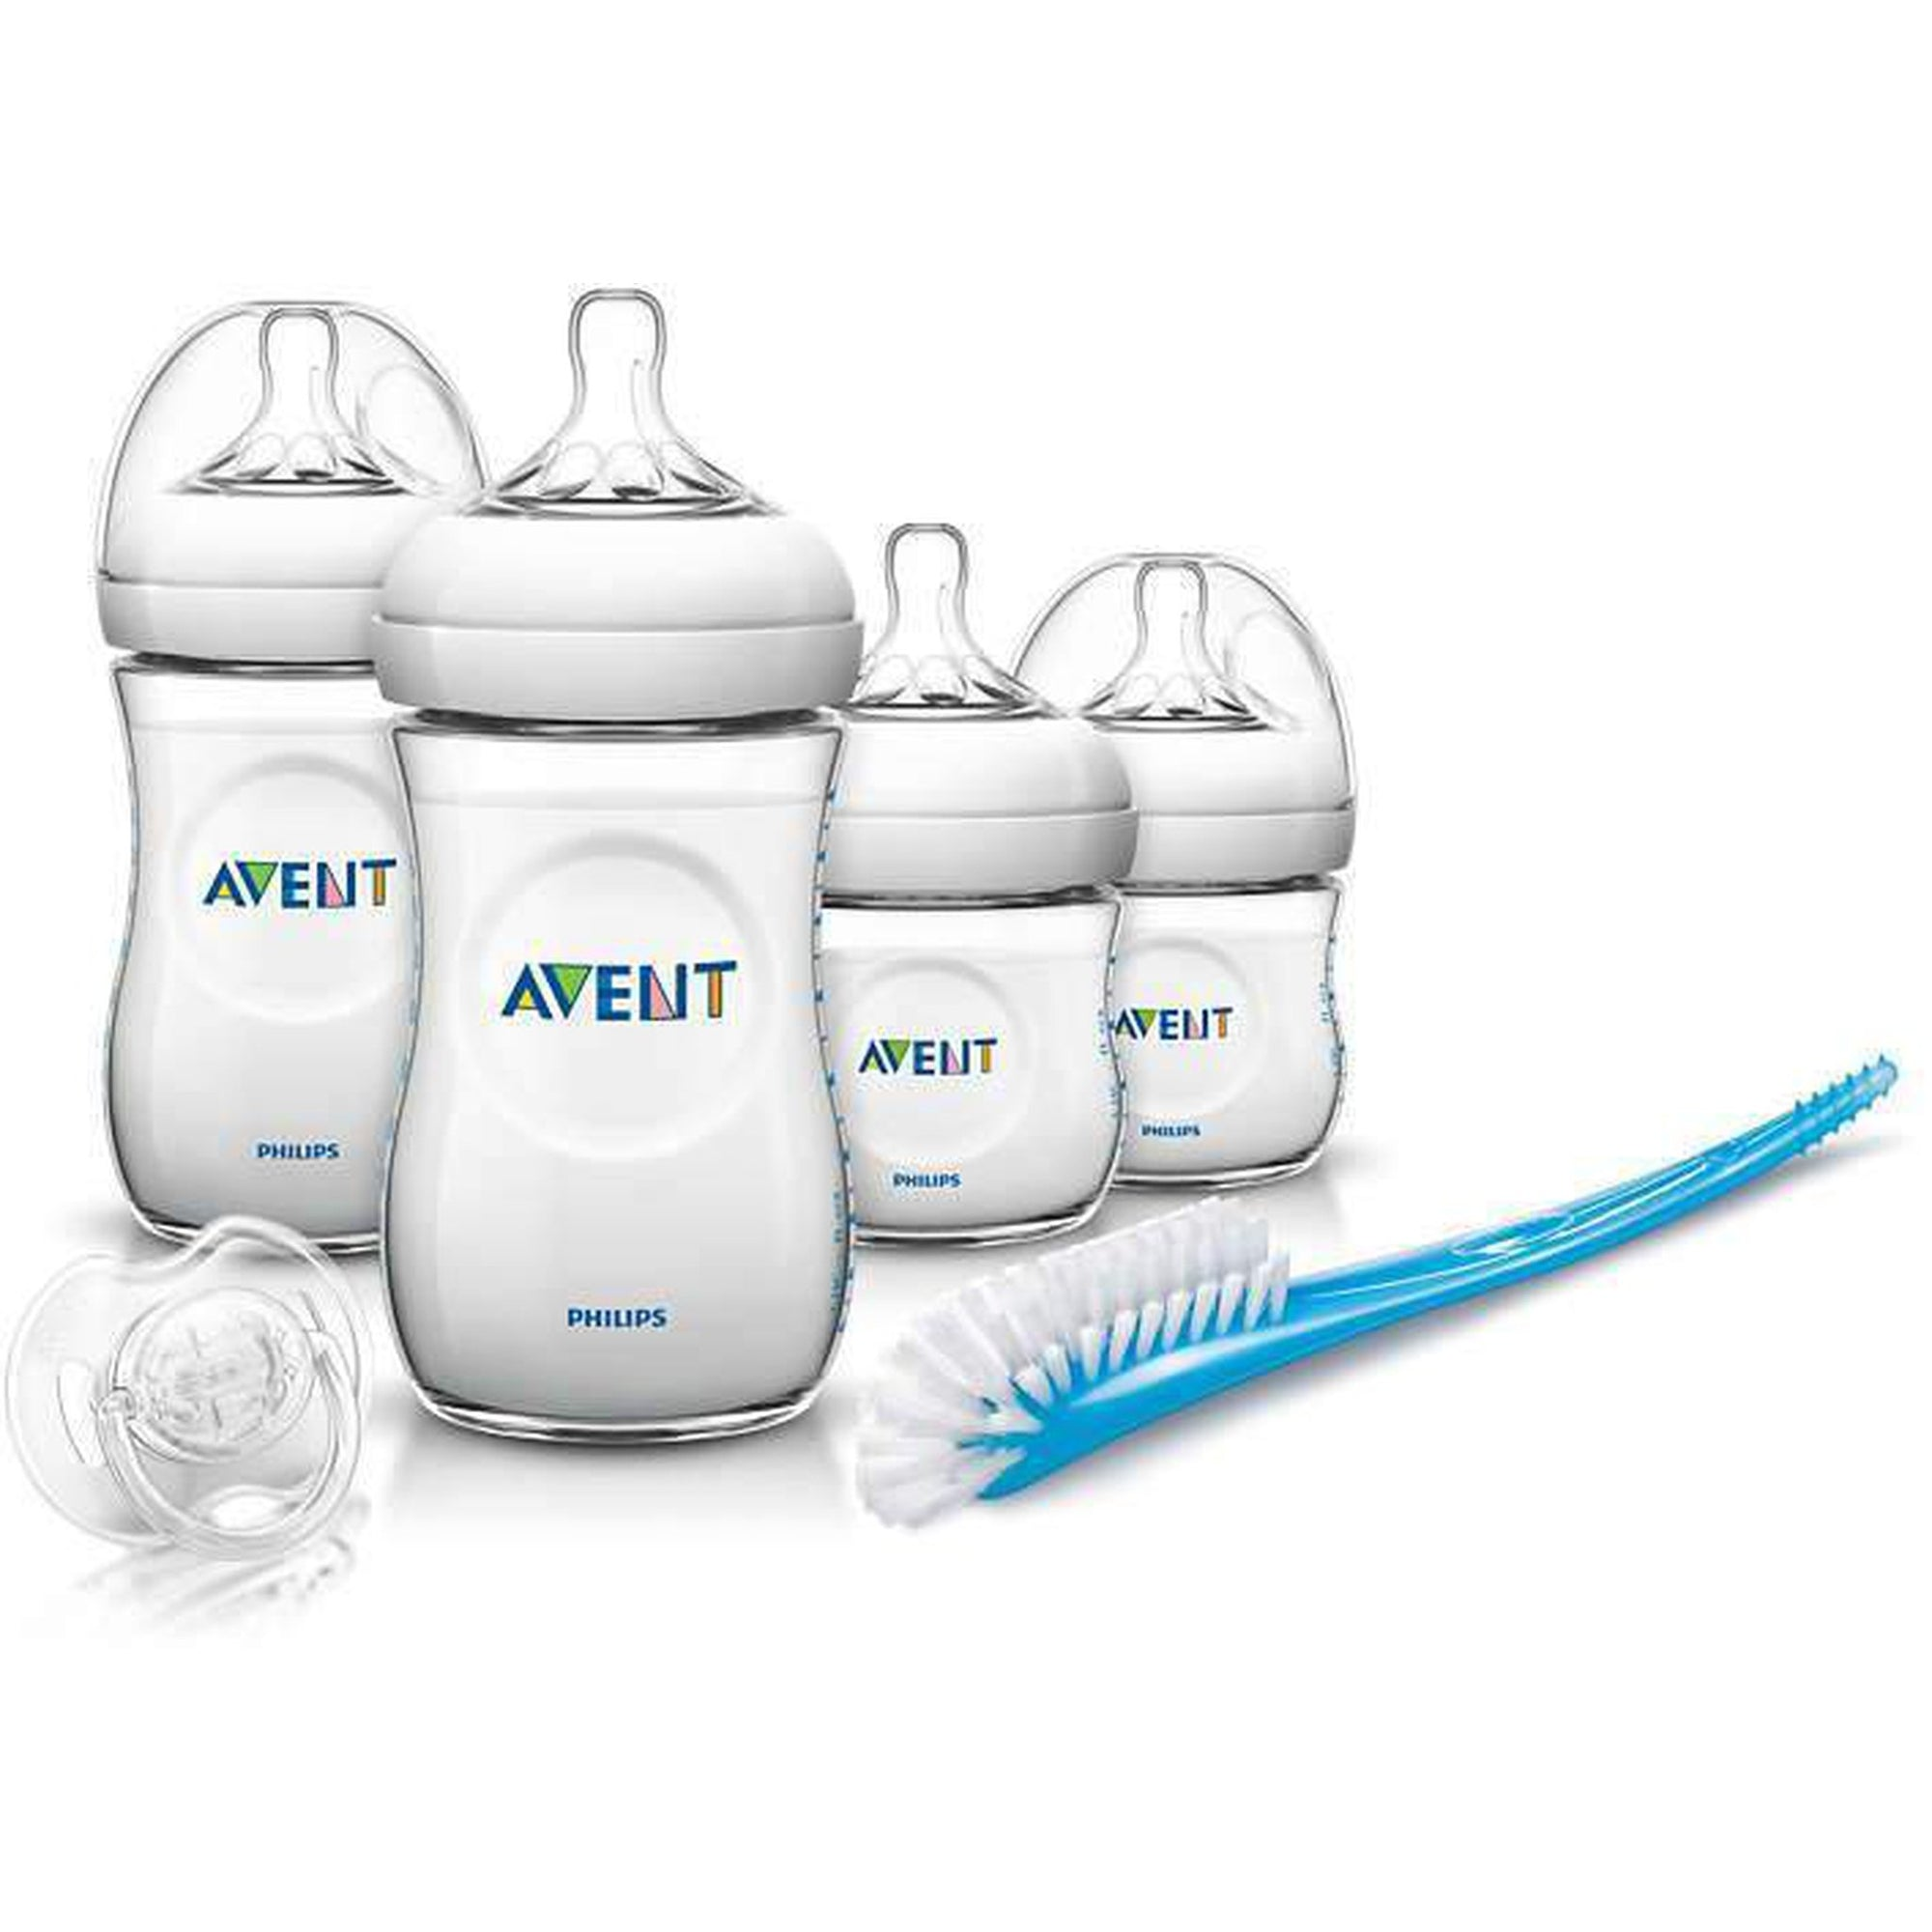 Avent Newborn Starter Set Natural-Feeding Starter and Gift Sets-Mother and Baby Shop Kenya's #1 Online Baby Shop